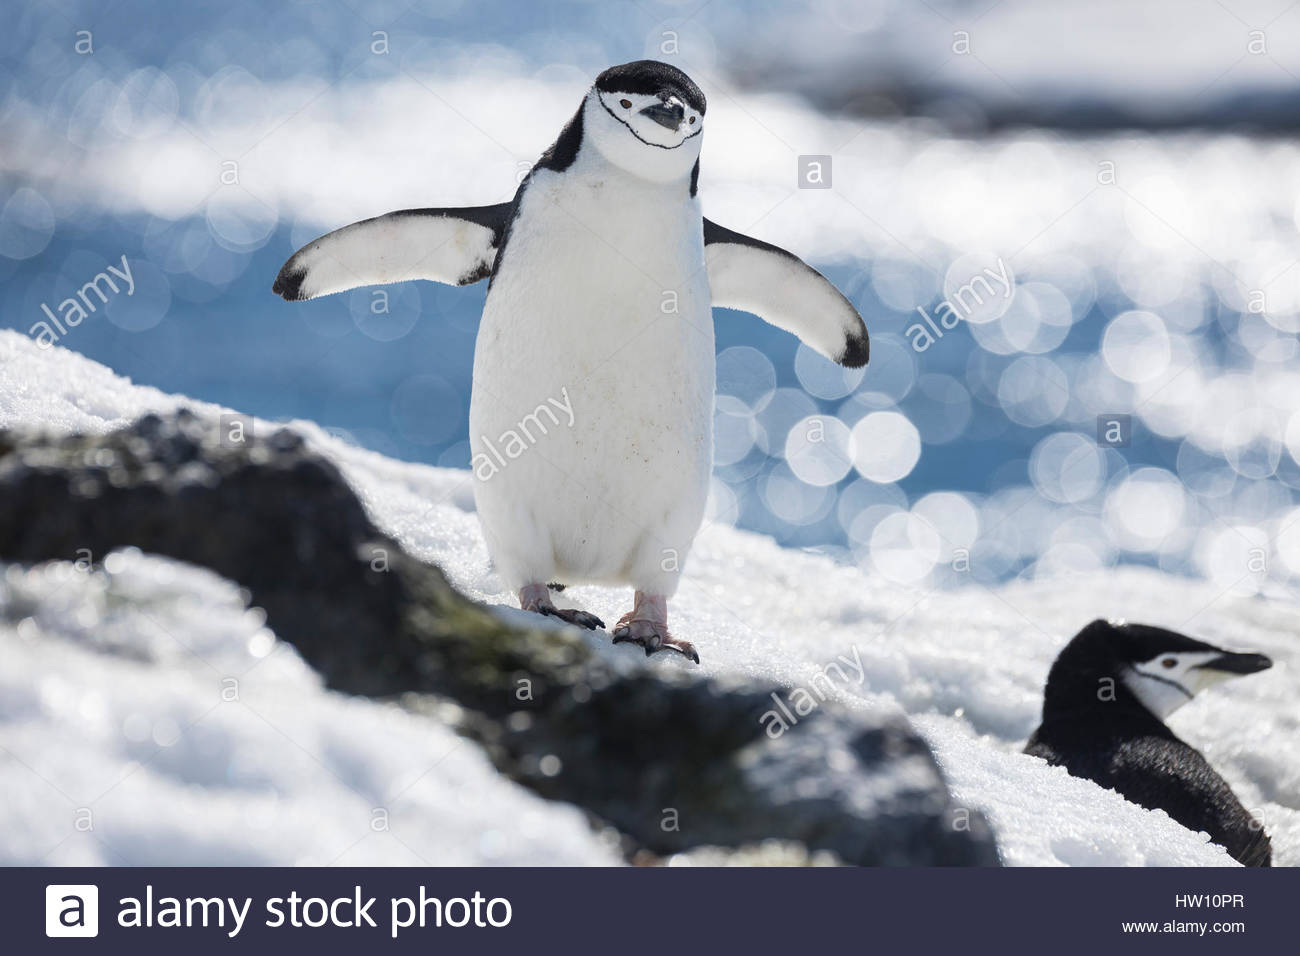 A chinstrap penguin stands near another penguin in the snow. - Stock Image